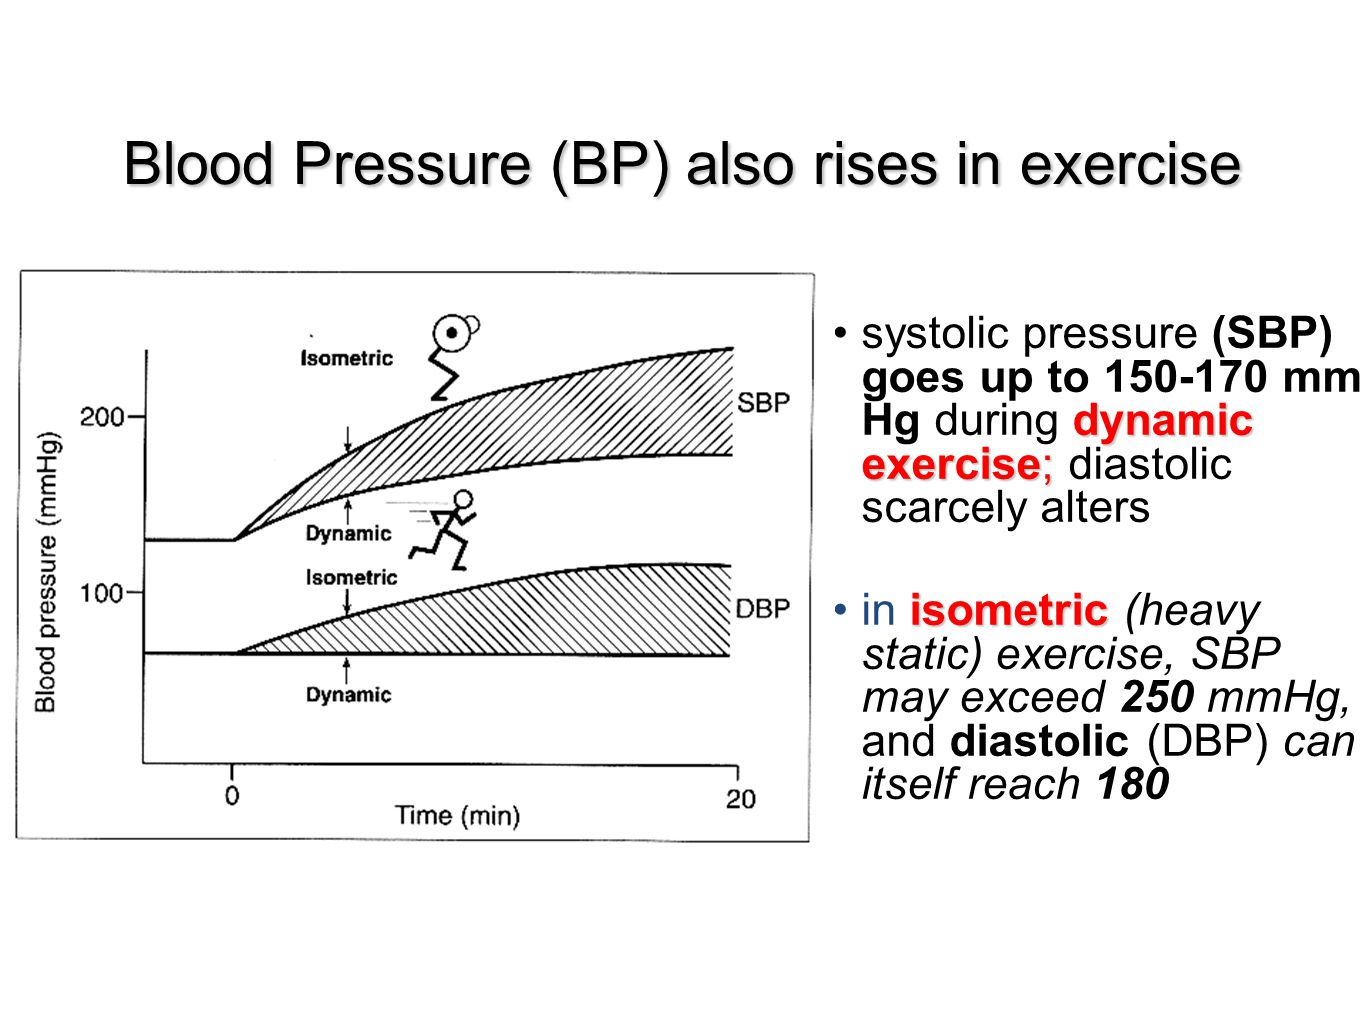 Blood Pressure (BP) also rises in exercise